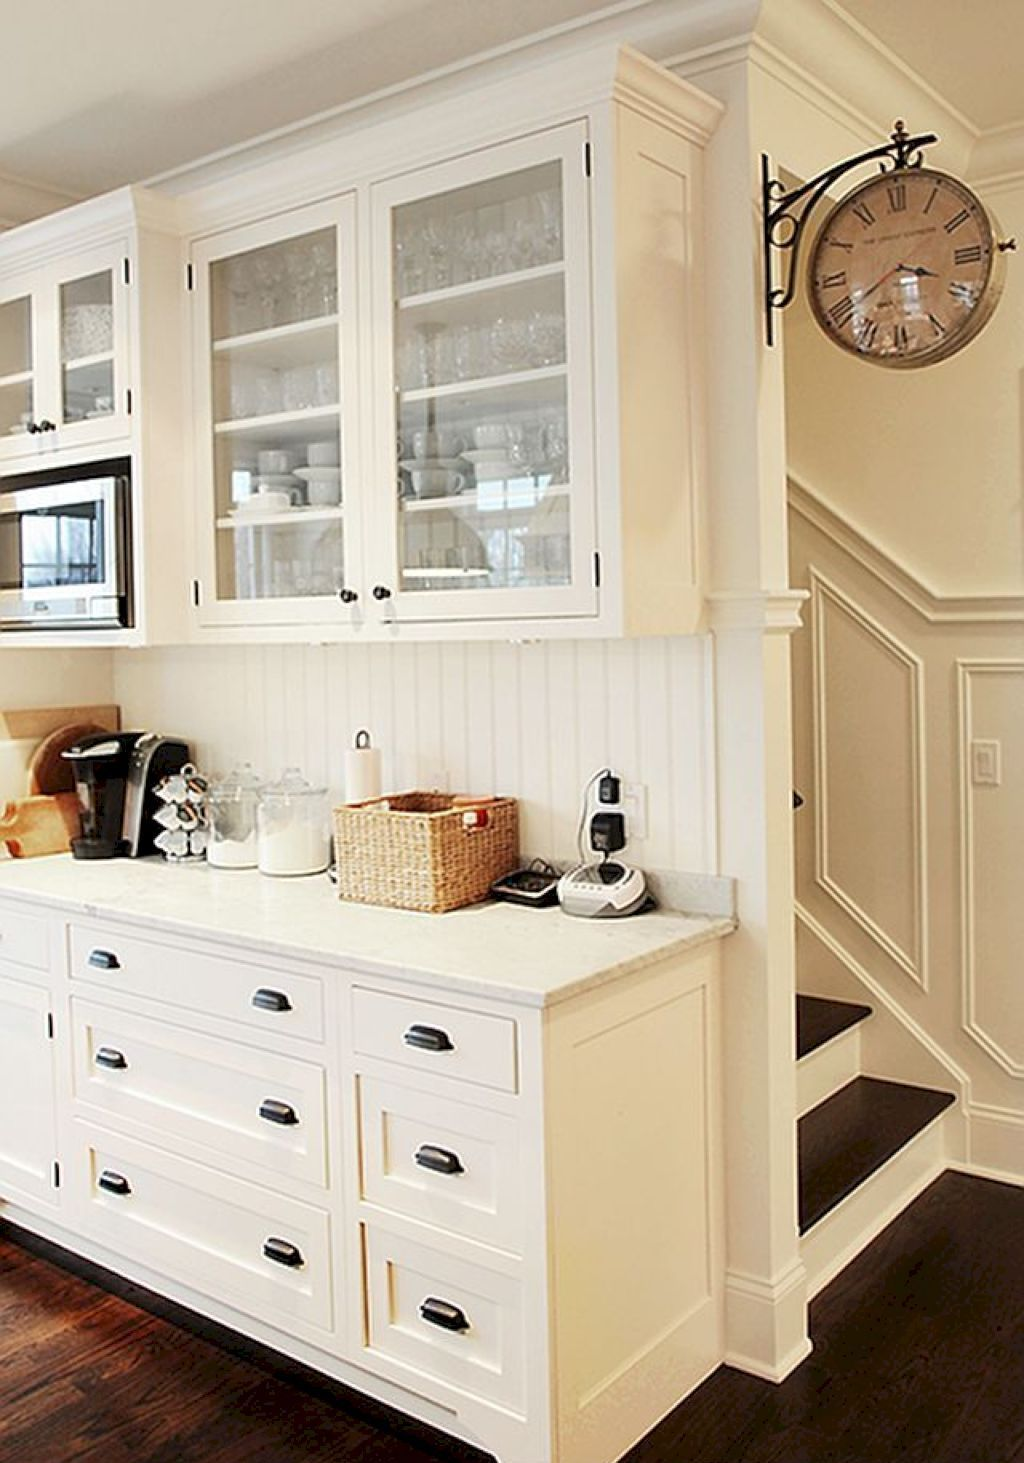 Farmhouse Bathroom Drawer Pulls 45 Awesome Farmhouse Kitchen Cabinet Ideas Kitchen In